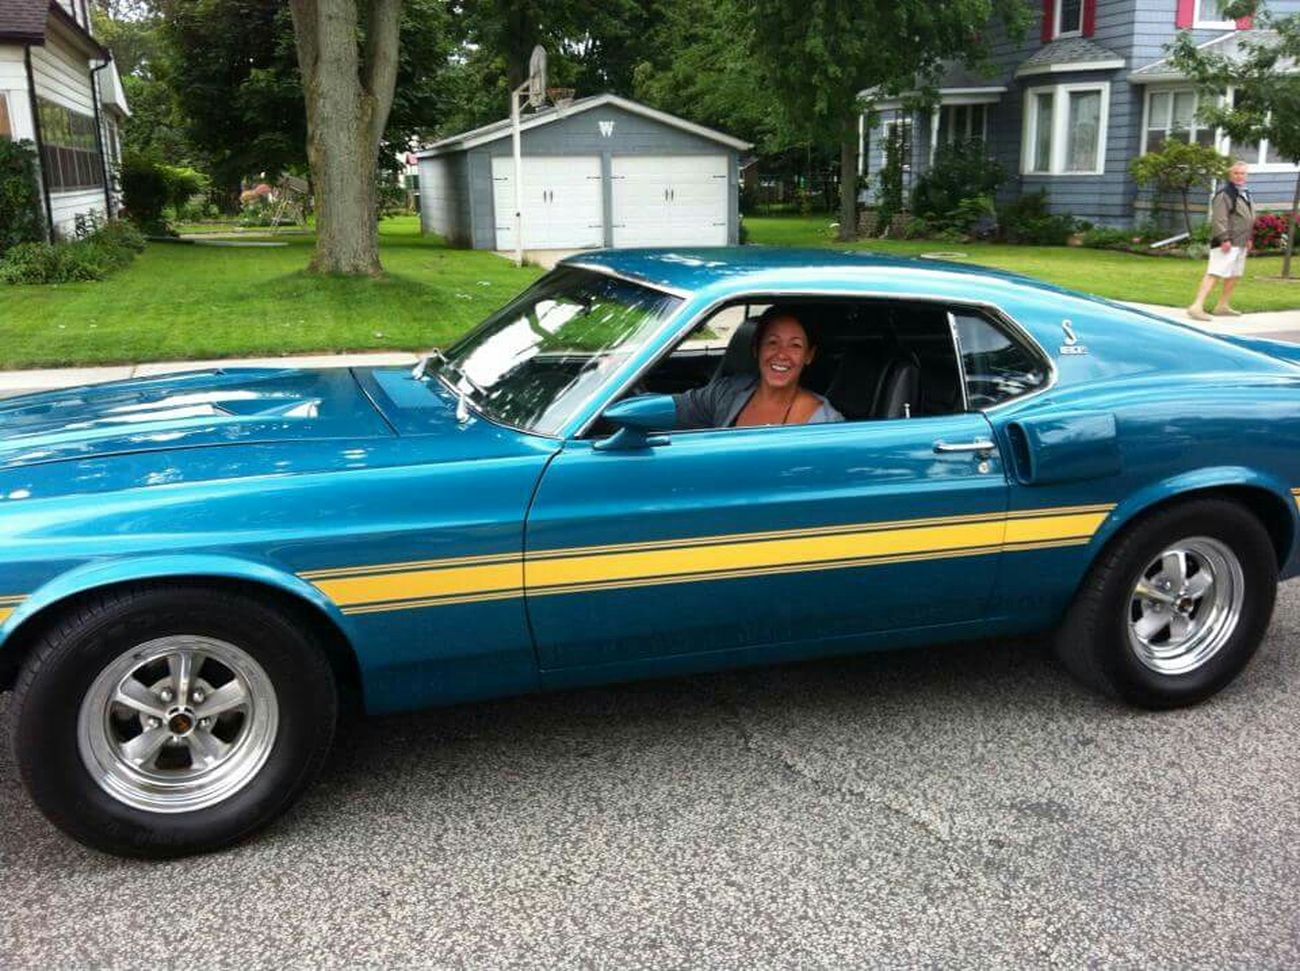 Ford Mustang Amherstburg Friendscar Myfav That's Me